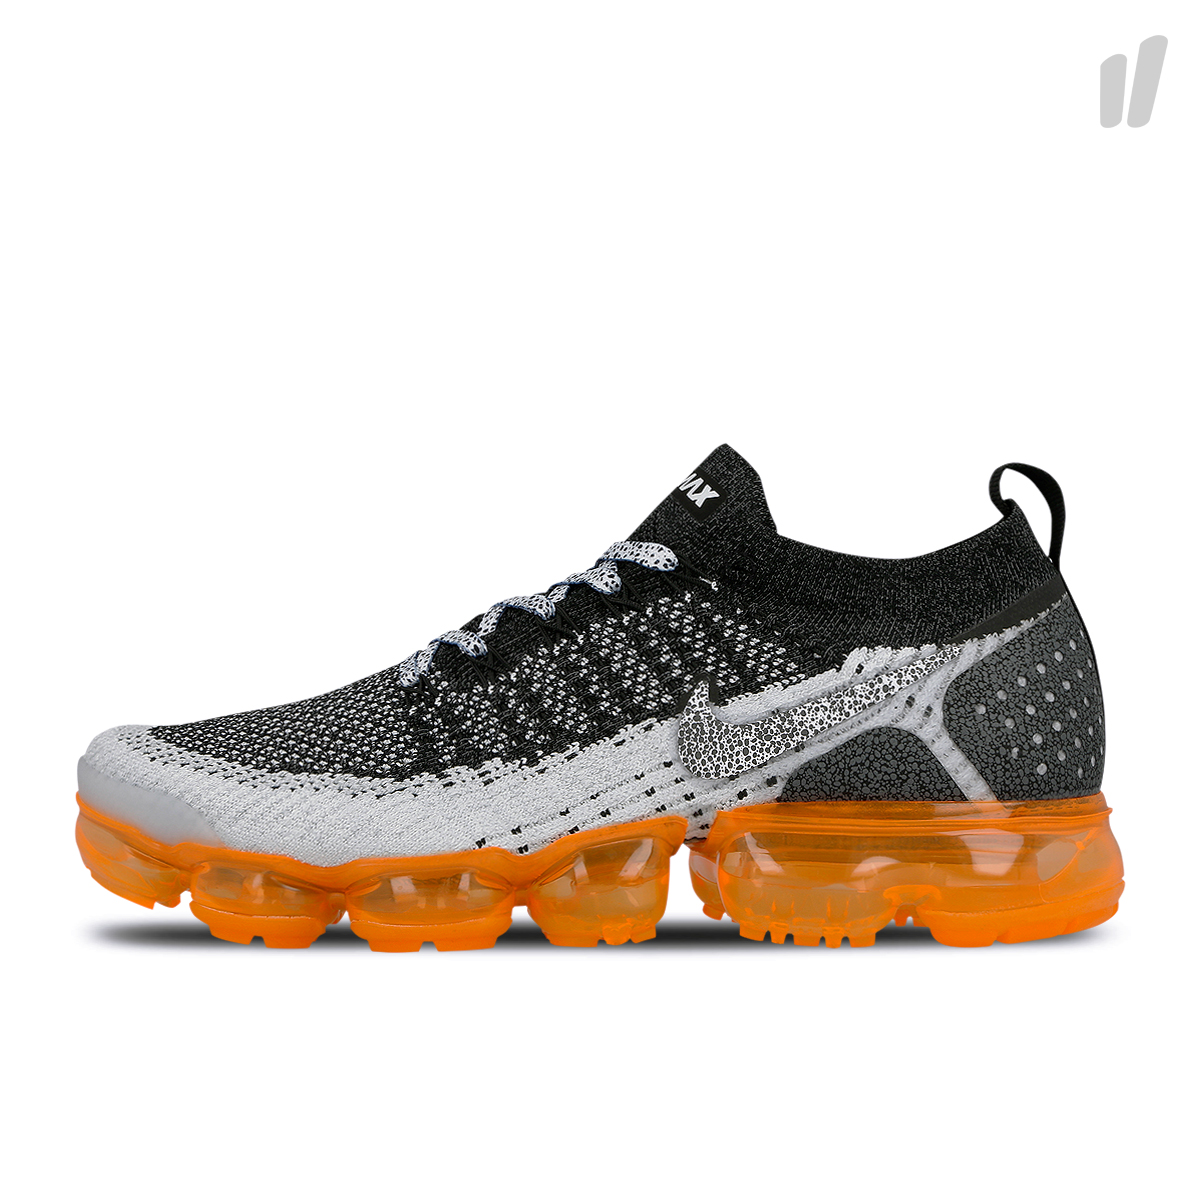 51100d8a721c54 Nike Air VaporMax Flyknit 2 Safari Men s Shoe - White